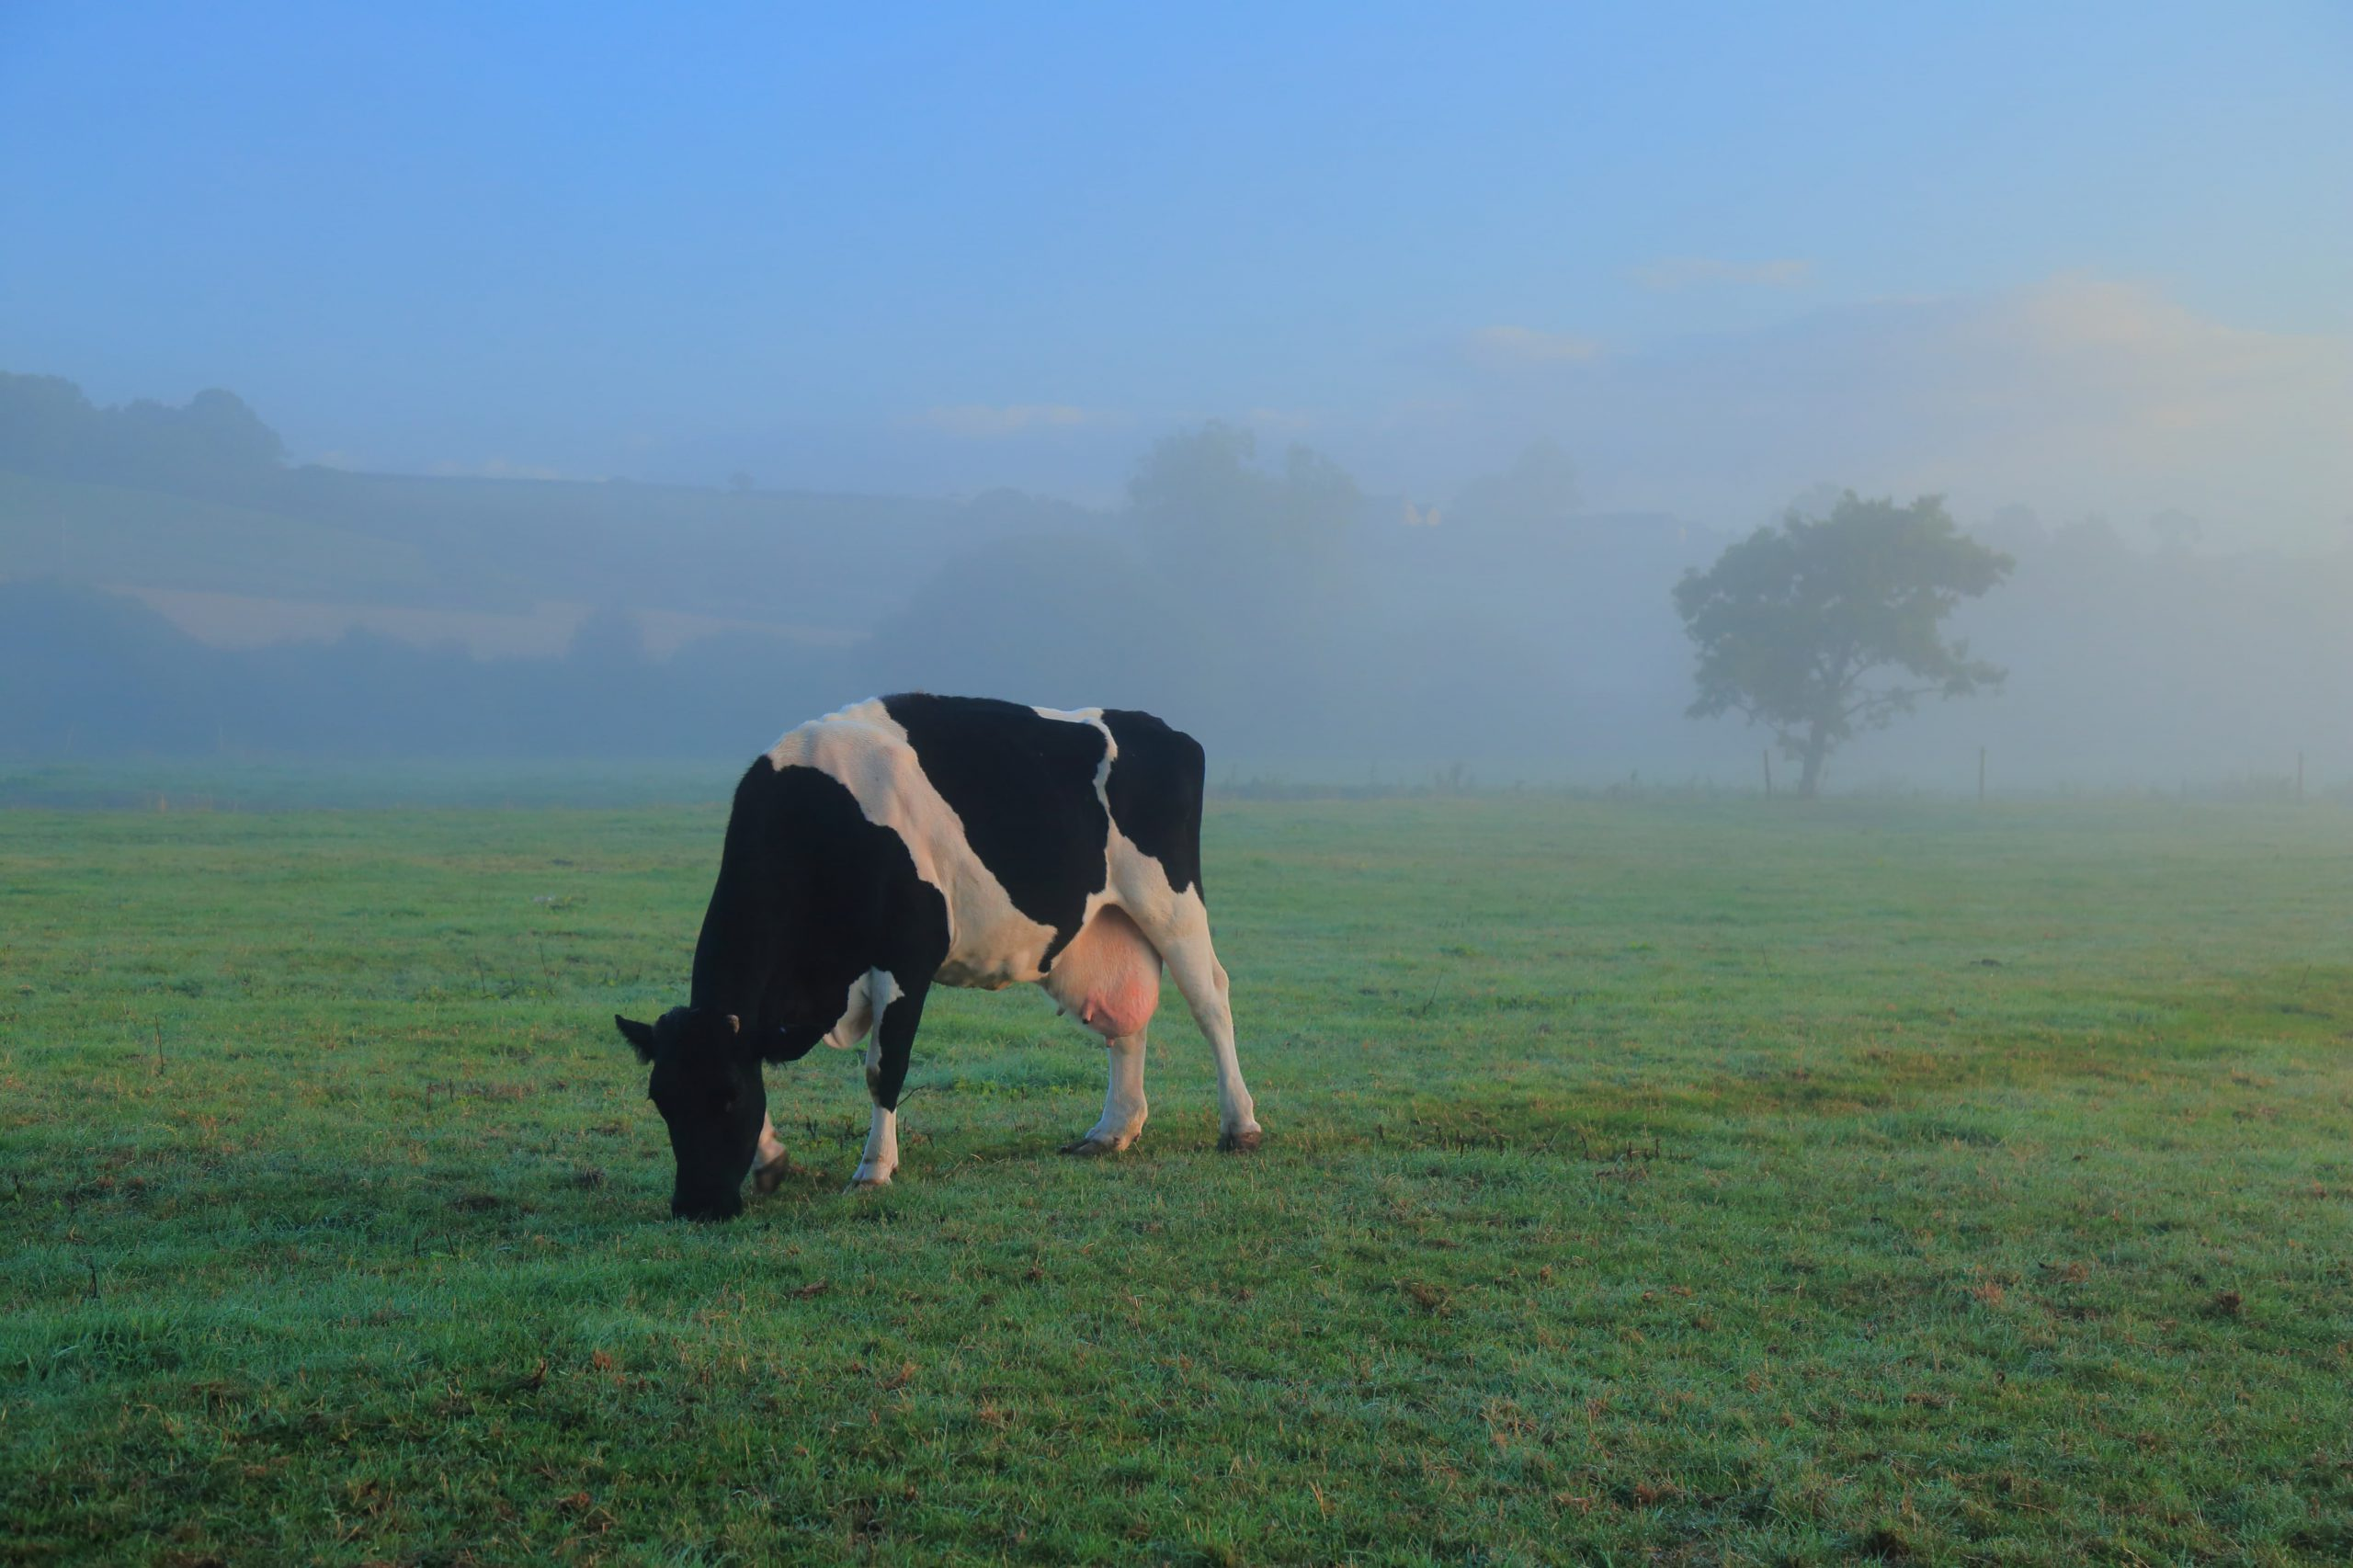 Cow in a misty field - Bovine TB